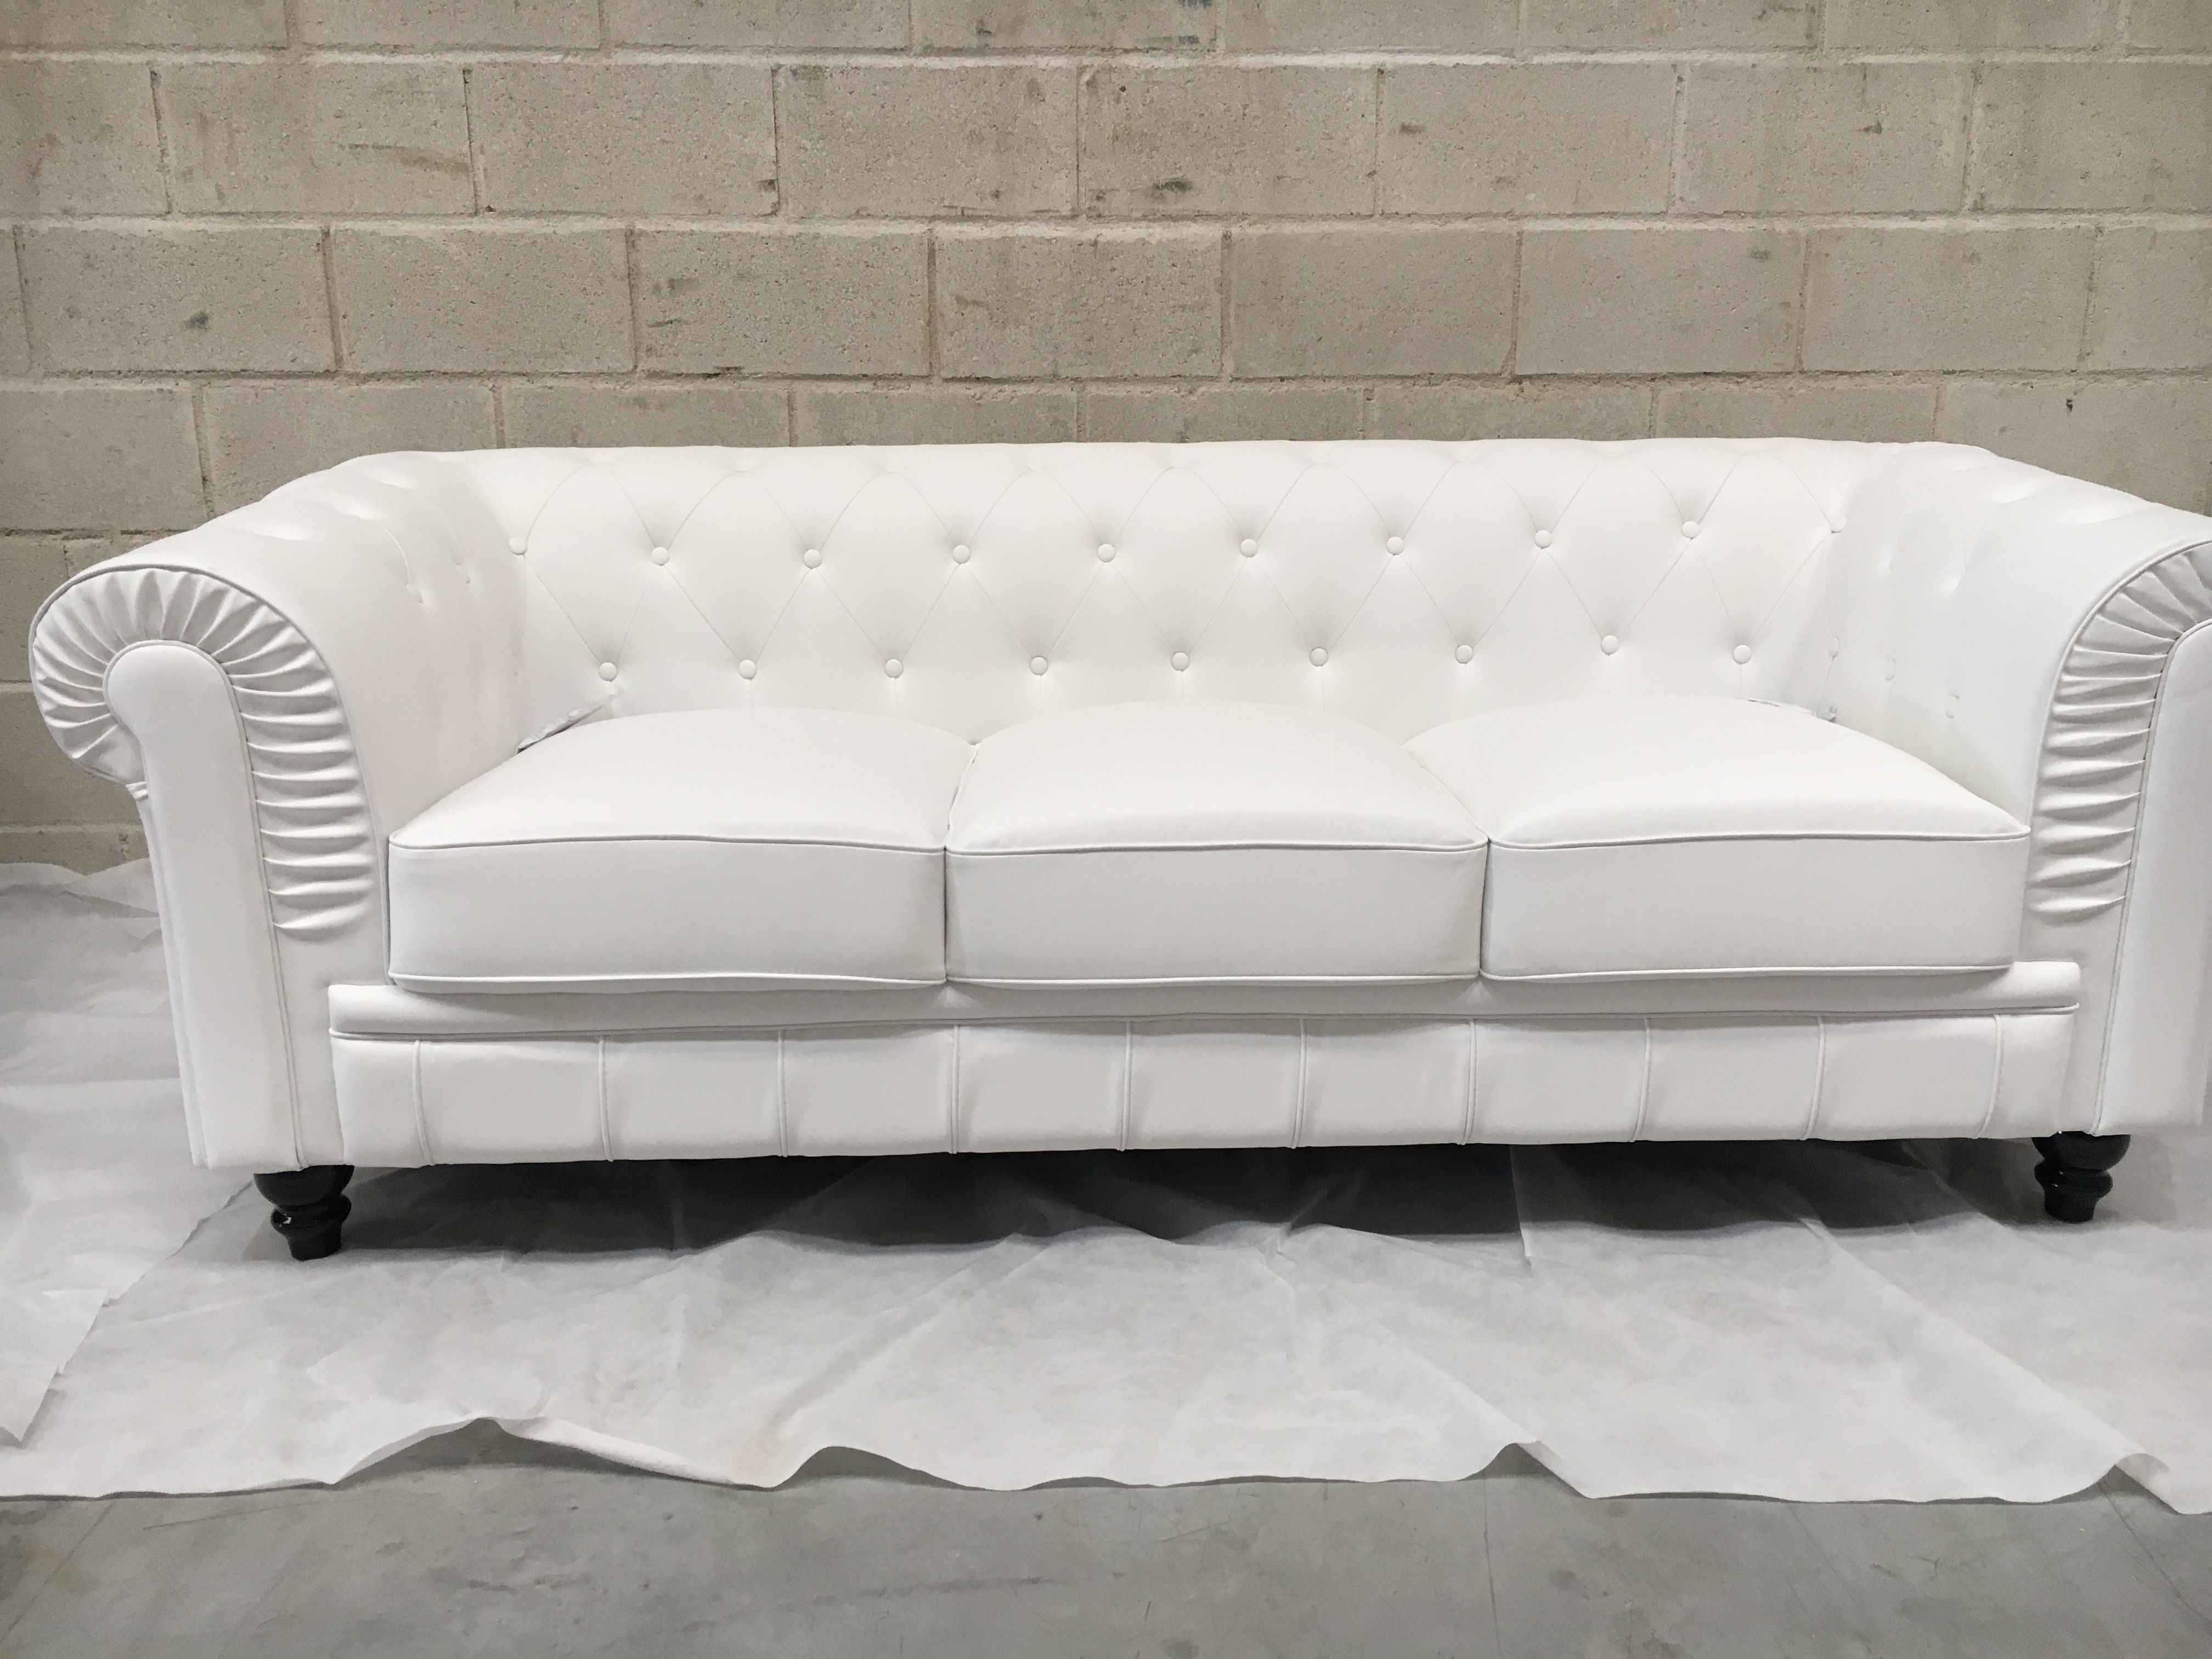 Pin By Muebles Marieta On Sofas Chester By Muebles Marieta Pinterest # Muebles Marieta